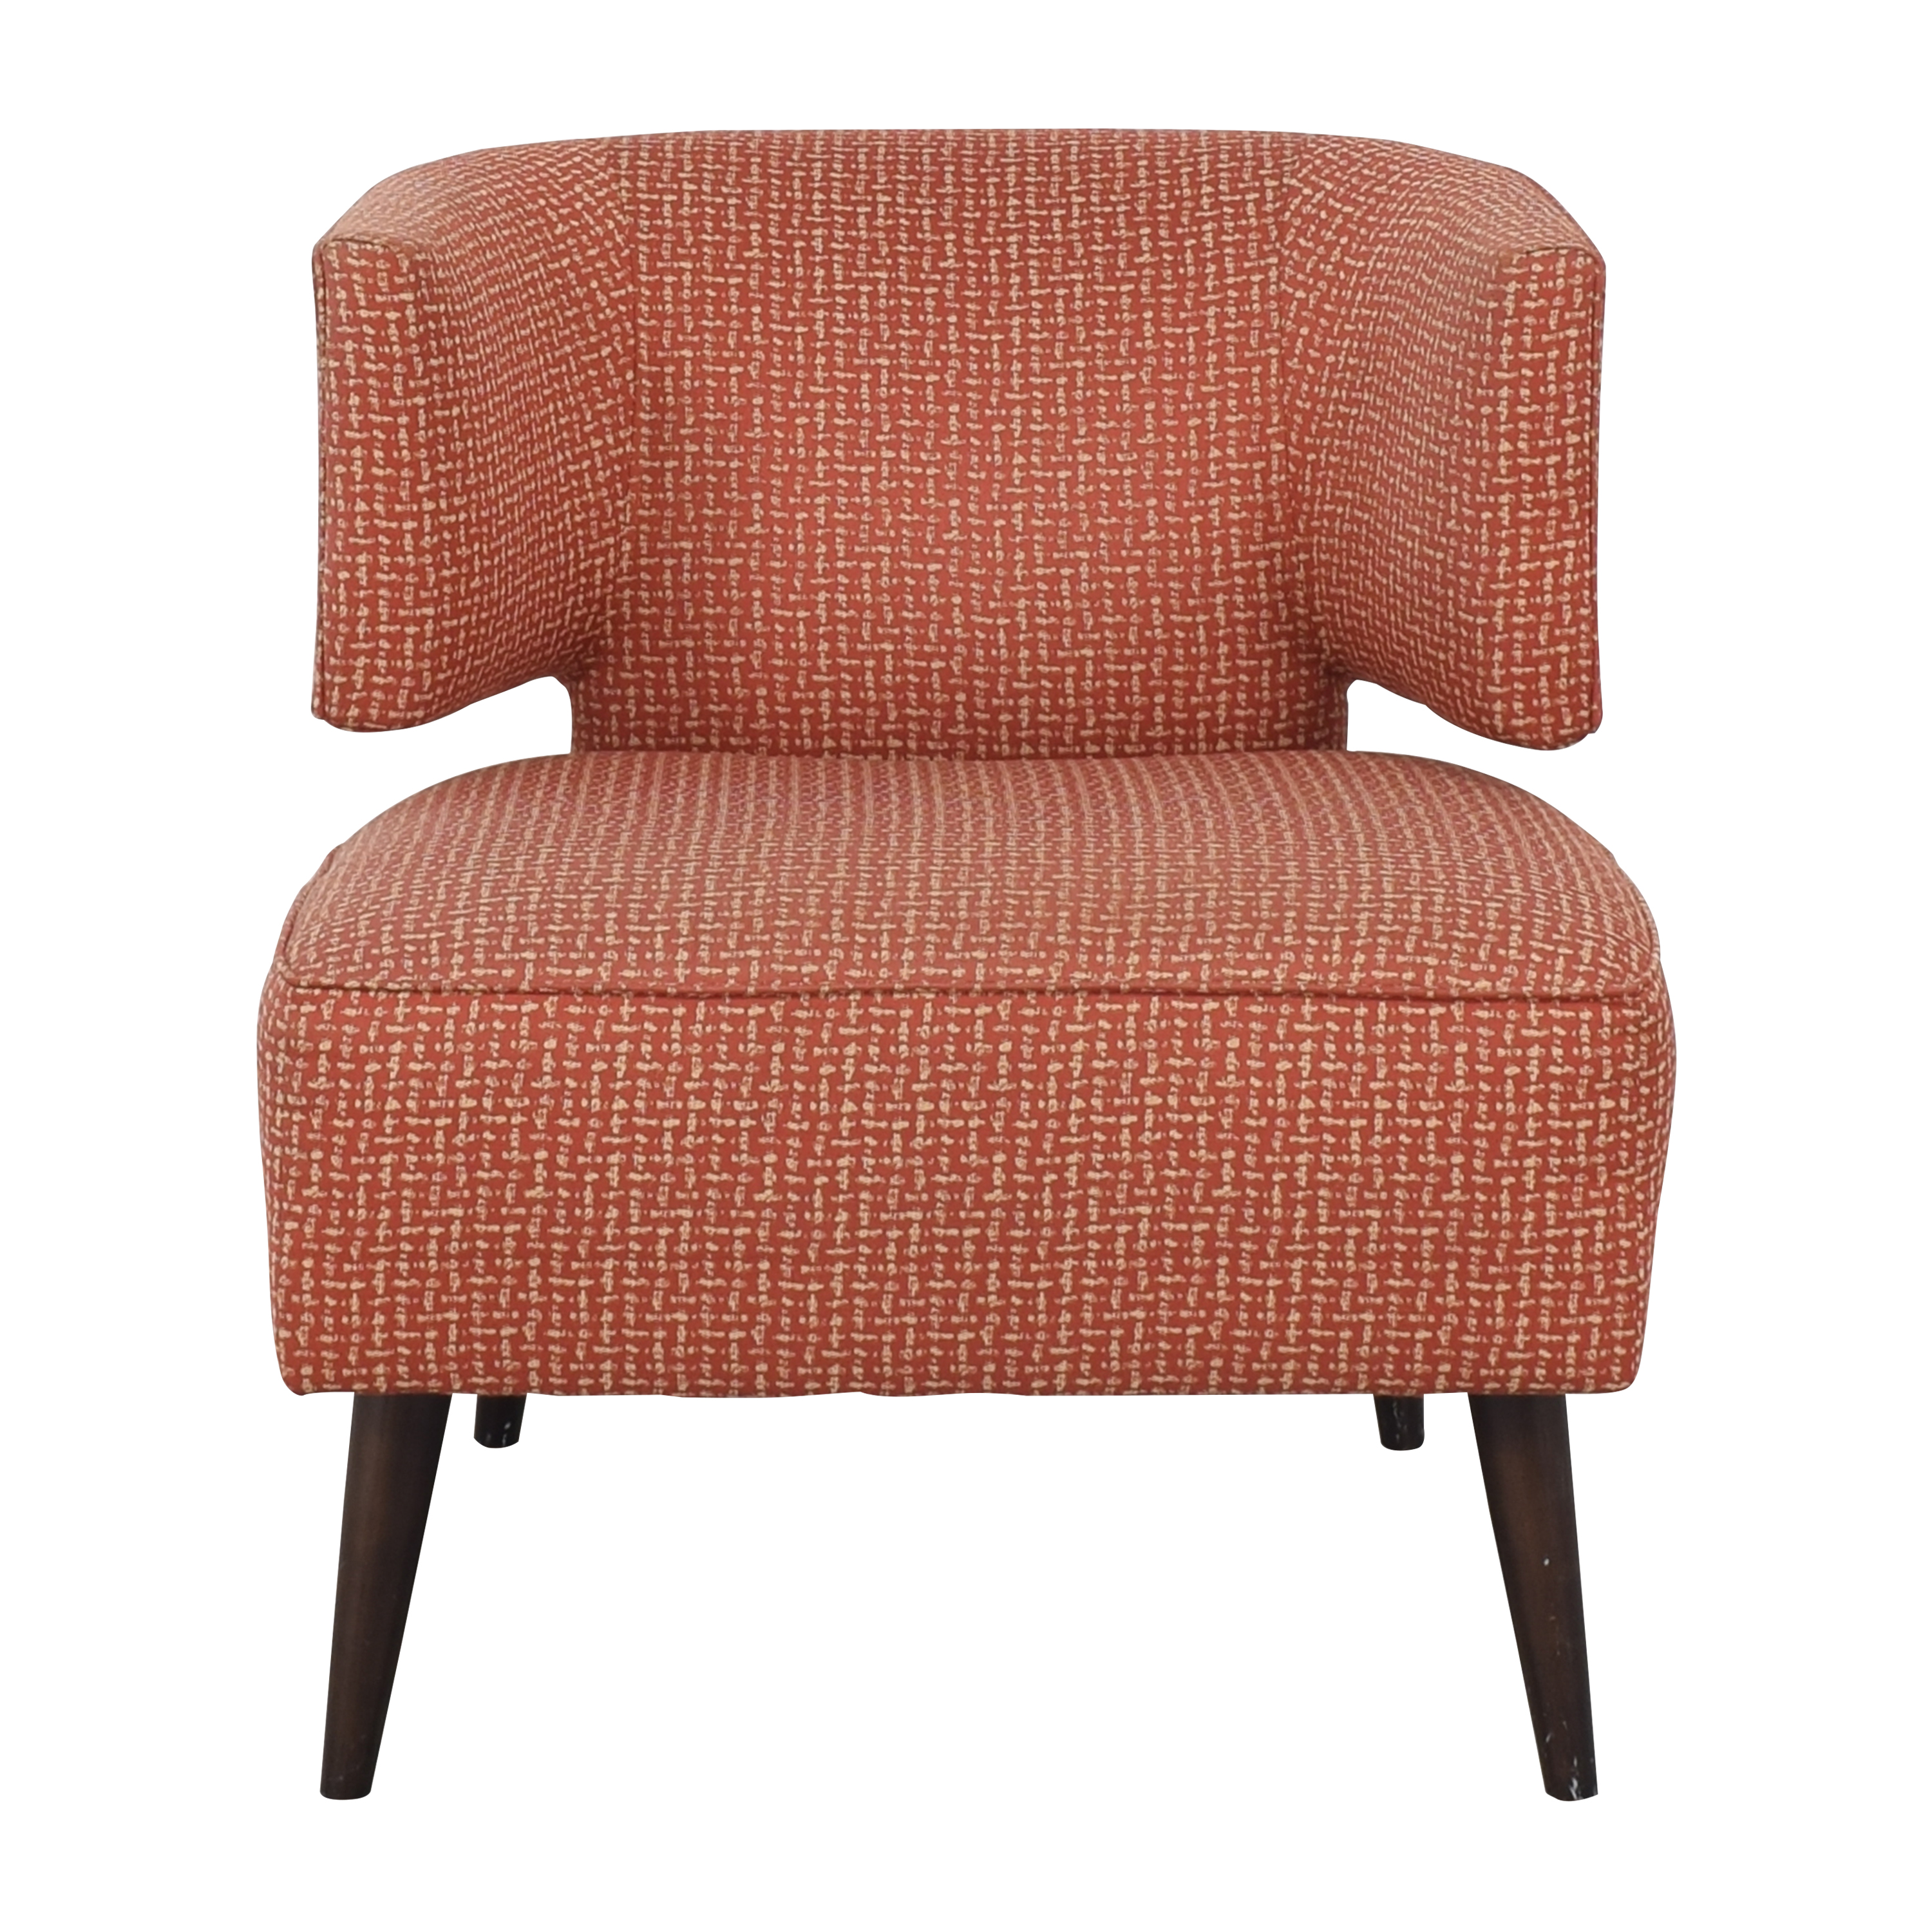 Room & Board Room & Board Modern Accent Chair Chairs